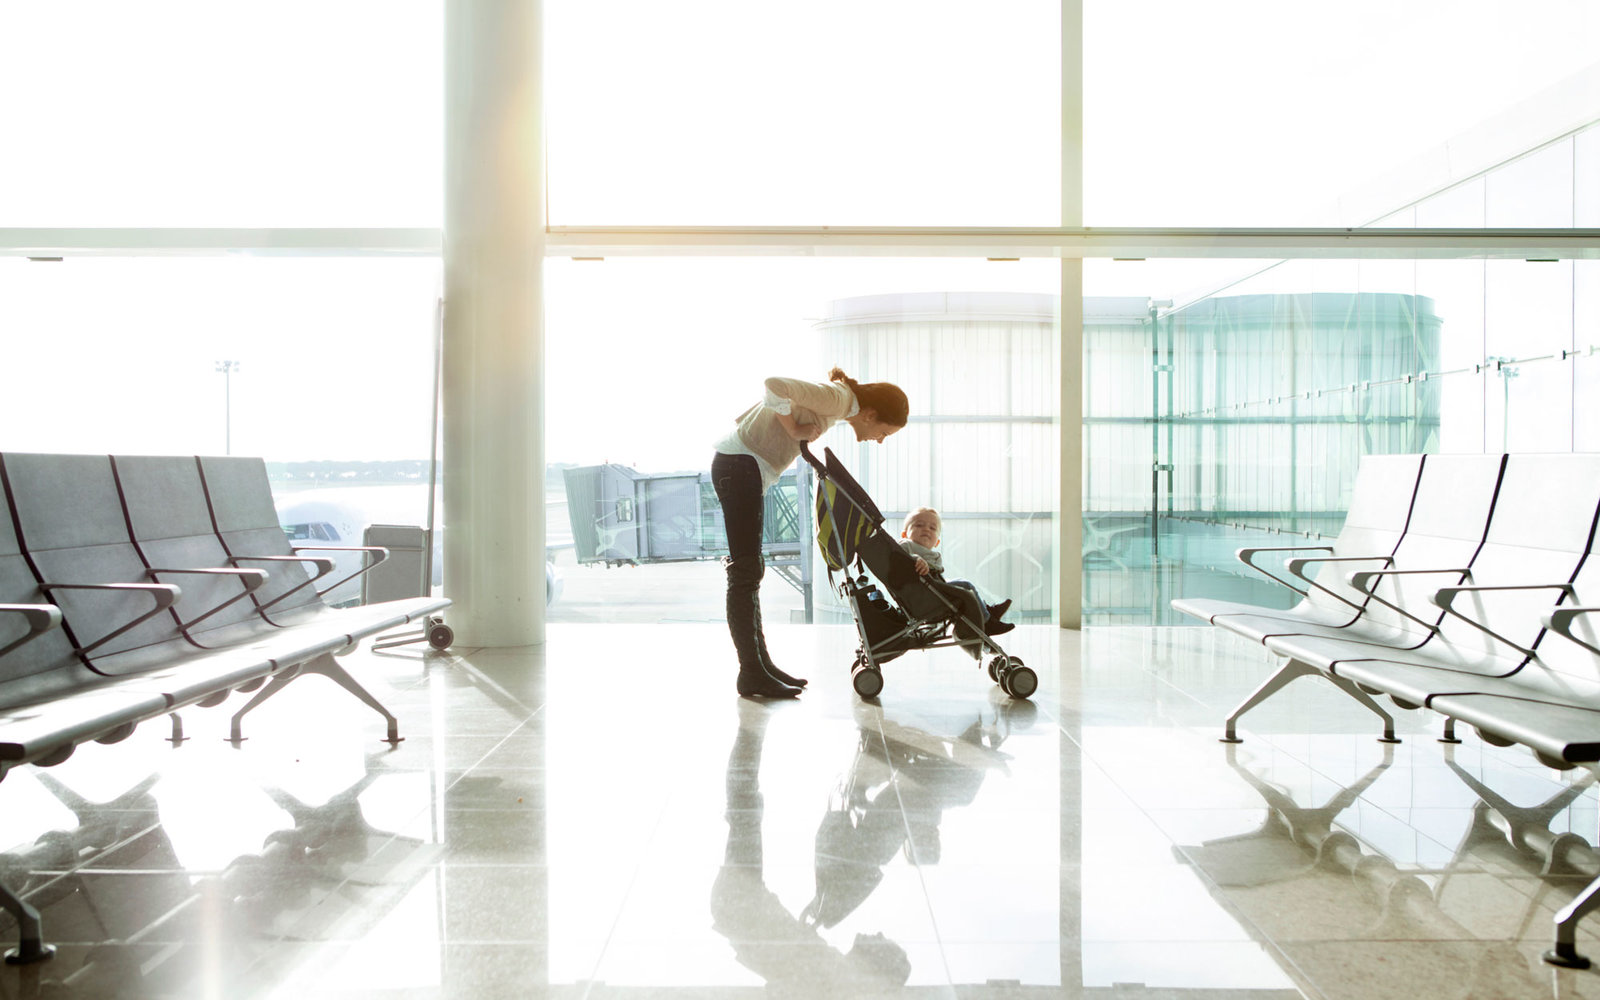 Father with baby at the airport